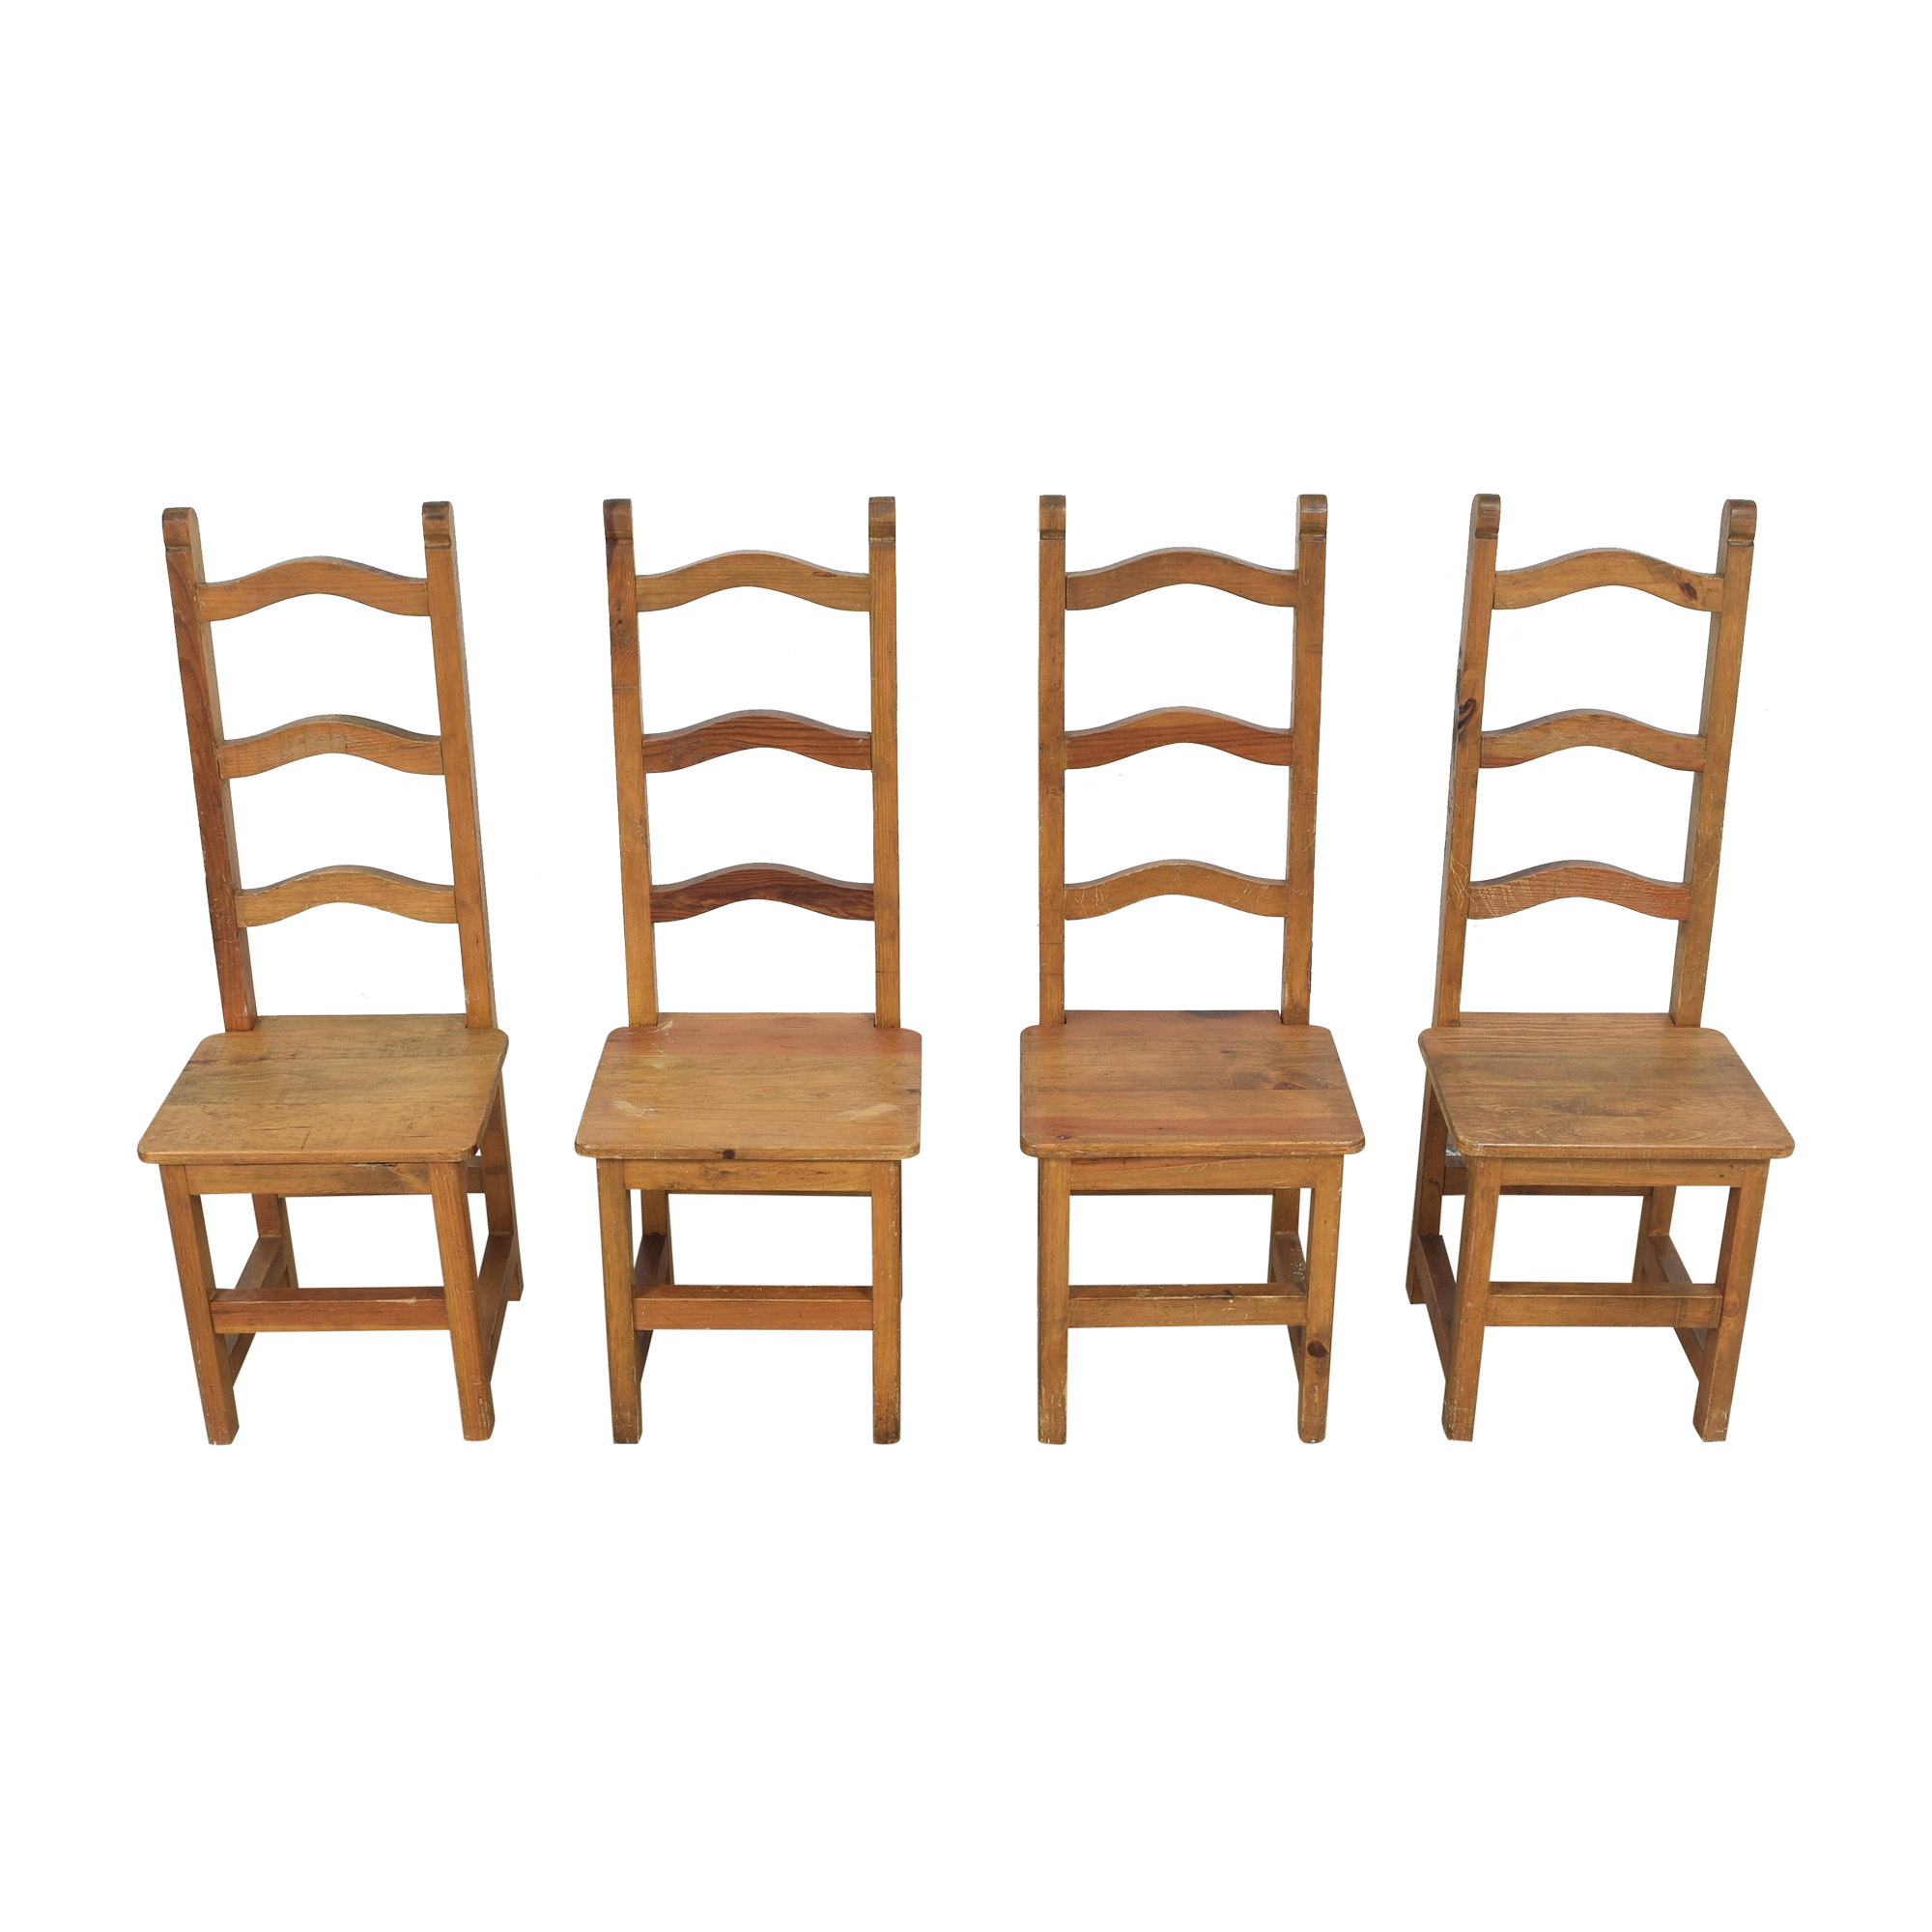 ABC Carpet & Home ABC Carpet & Home Ladderback Dining Chairs coupon